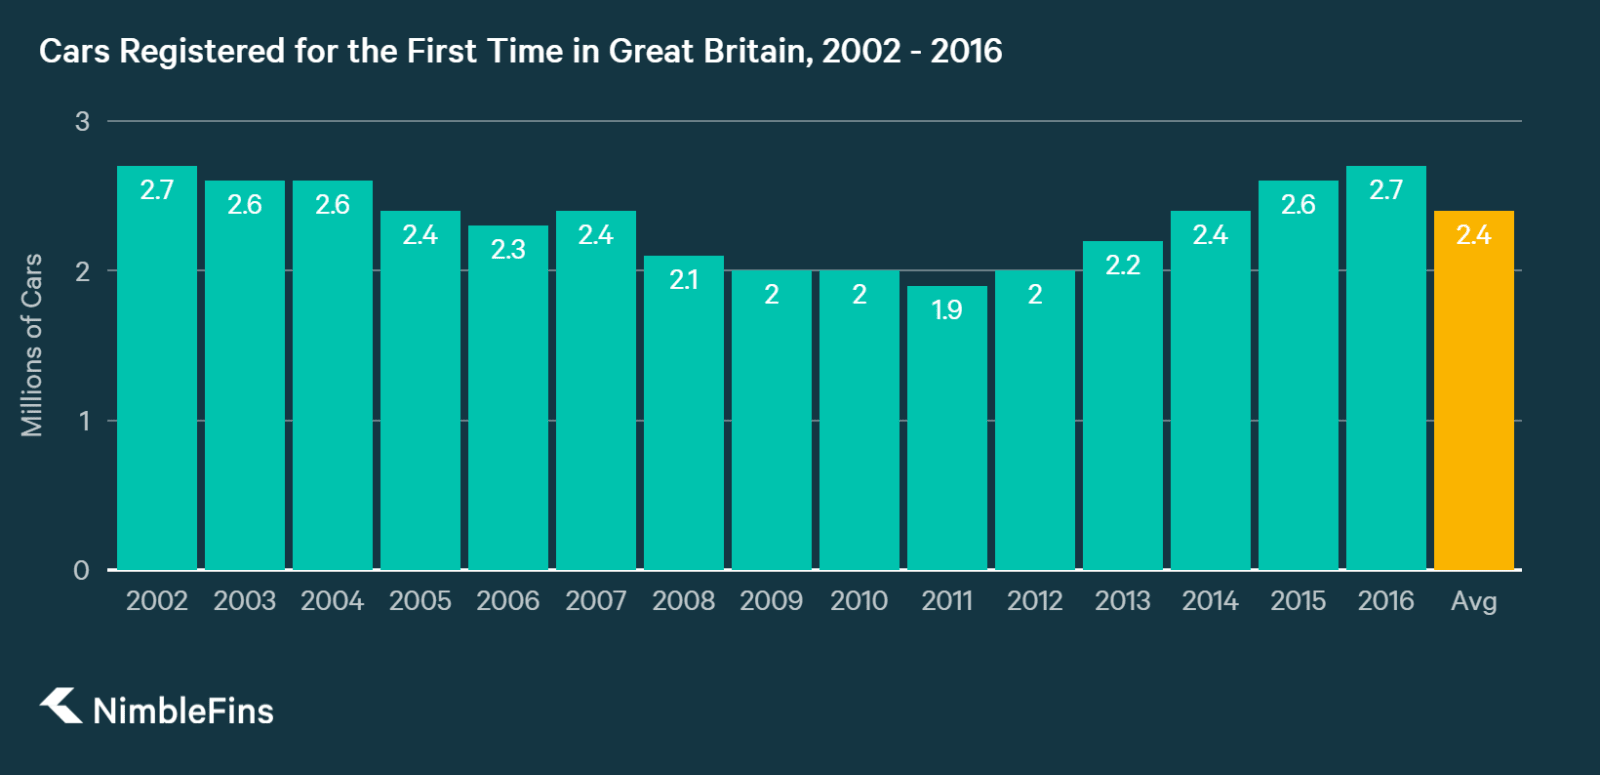 chart showing how many new cars were registered in Great Britain between 2002 and 2016